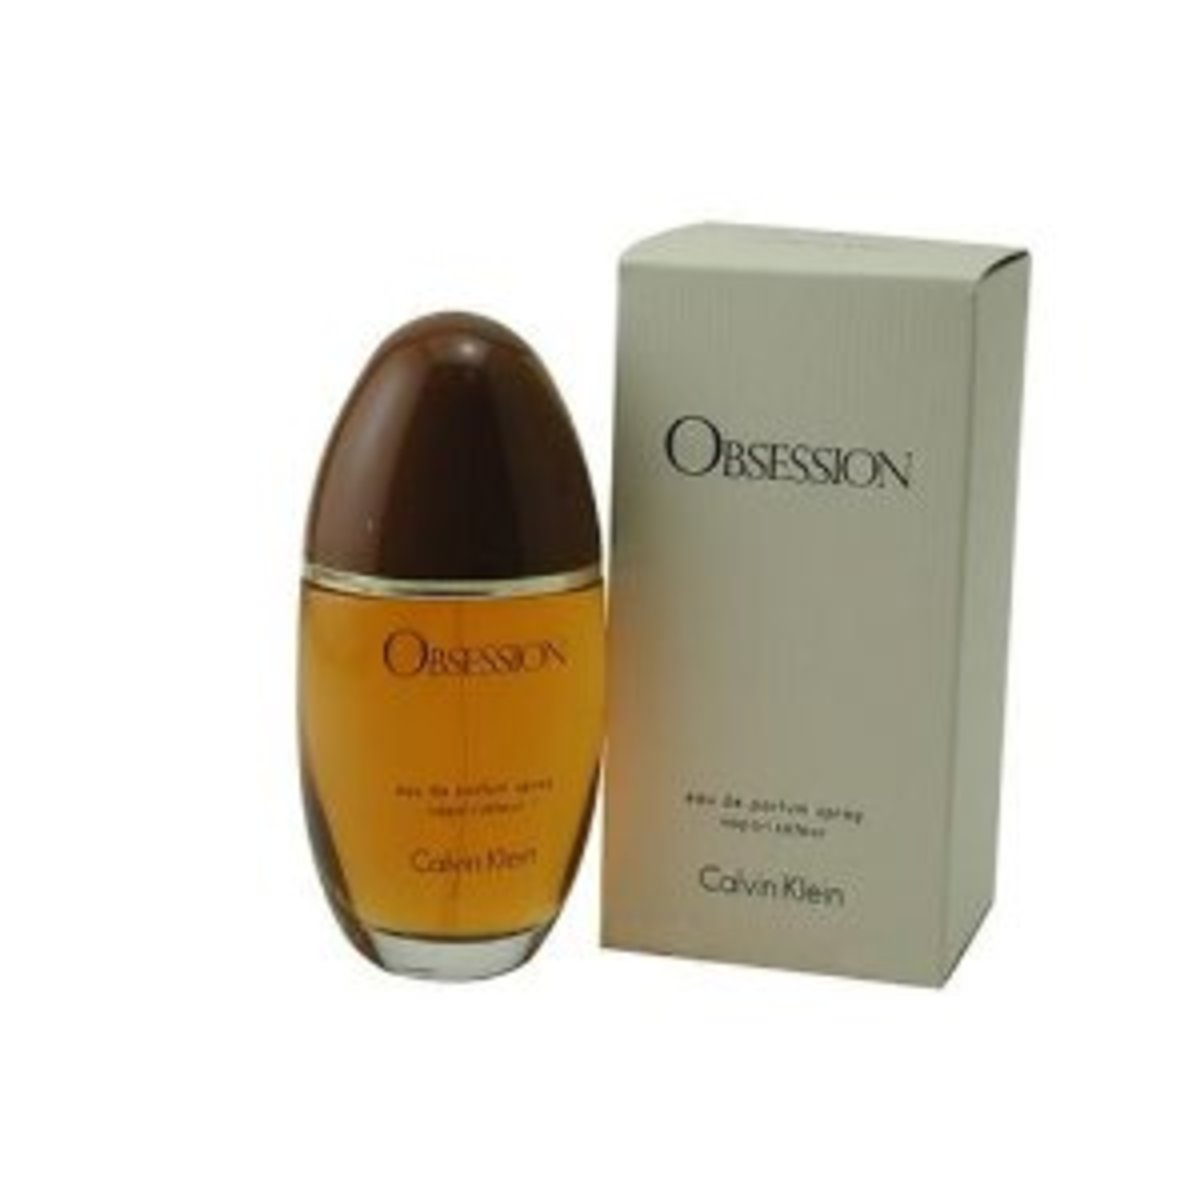 Classic perfumes for women - Obsession by Calvin Klein